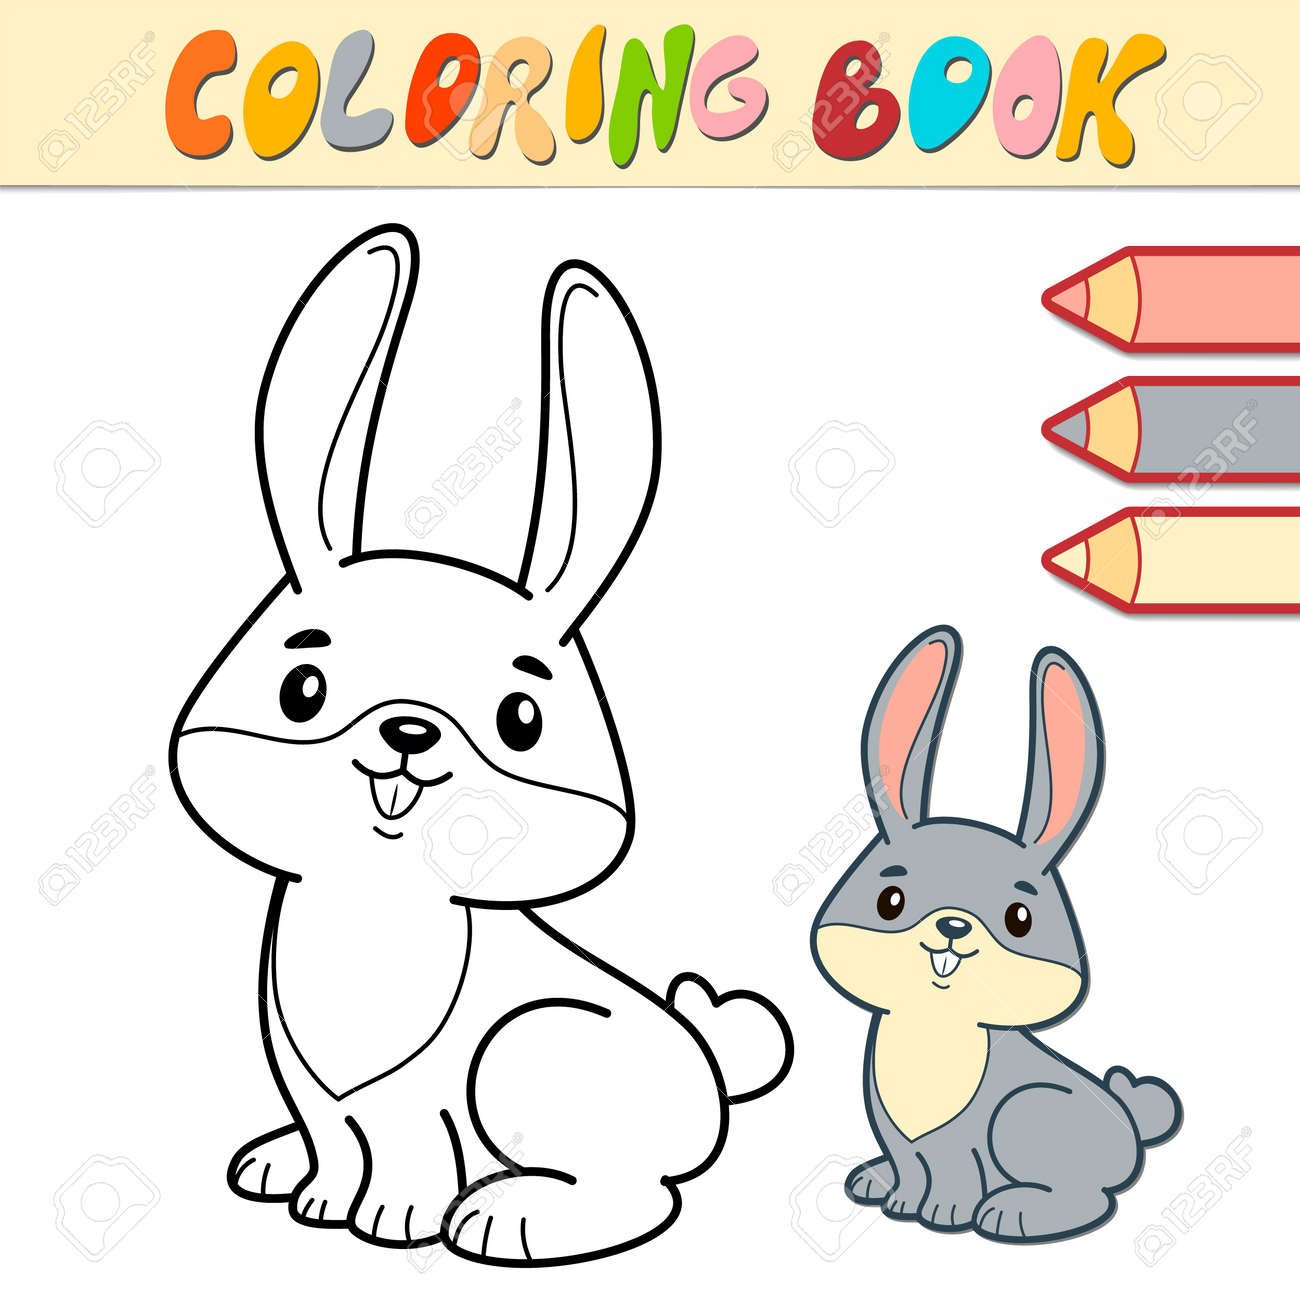 Coloring book or page for kids. rabbit black and white vector illustration - 168984988